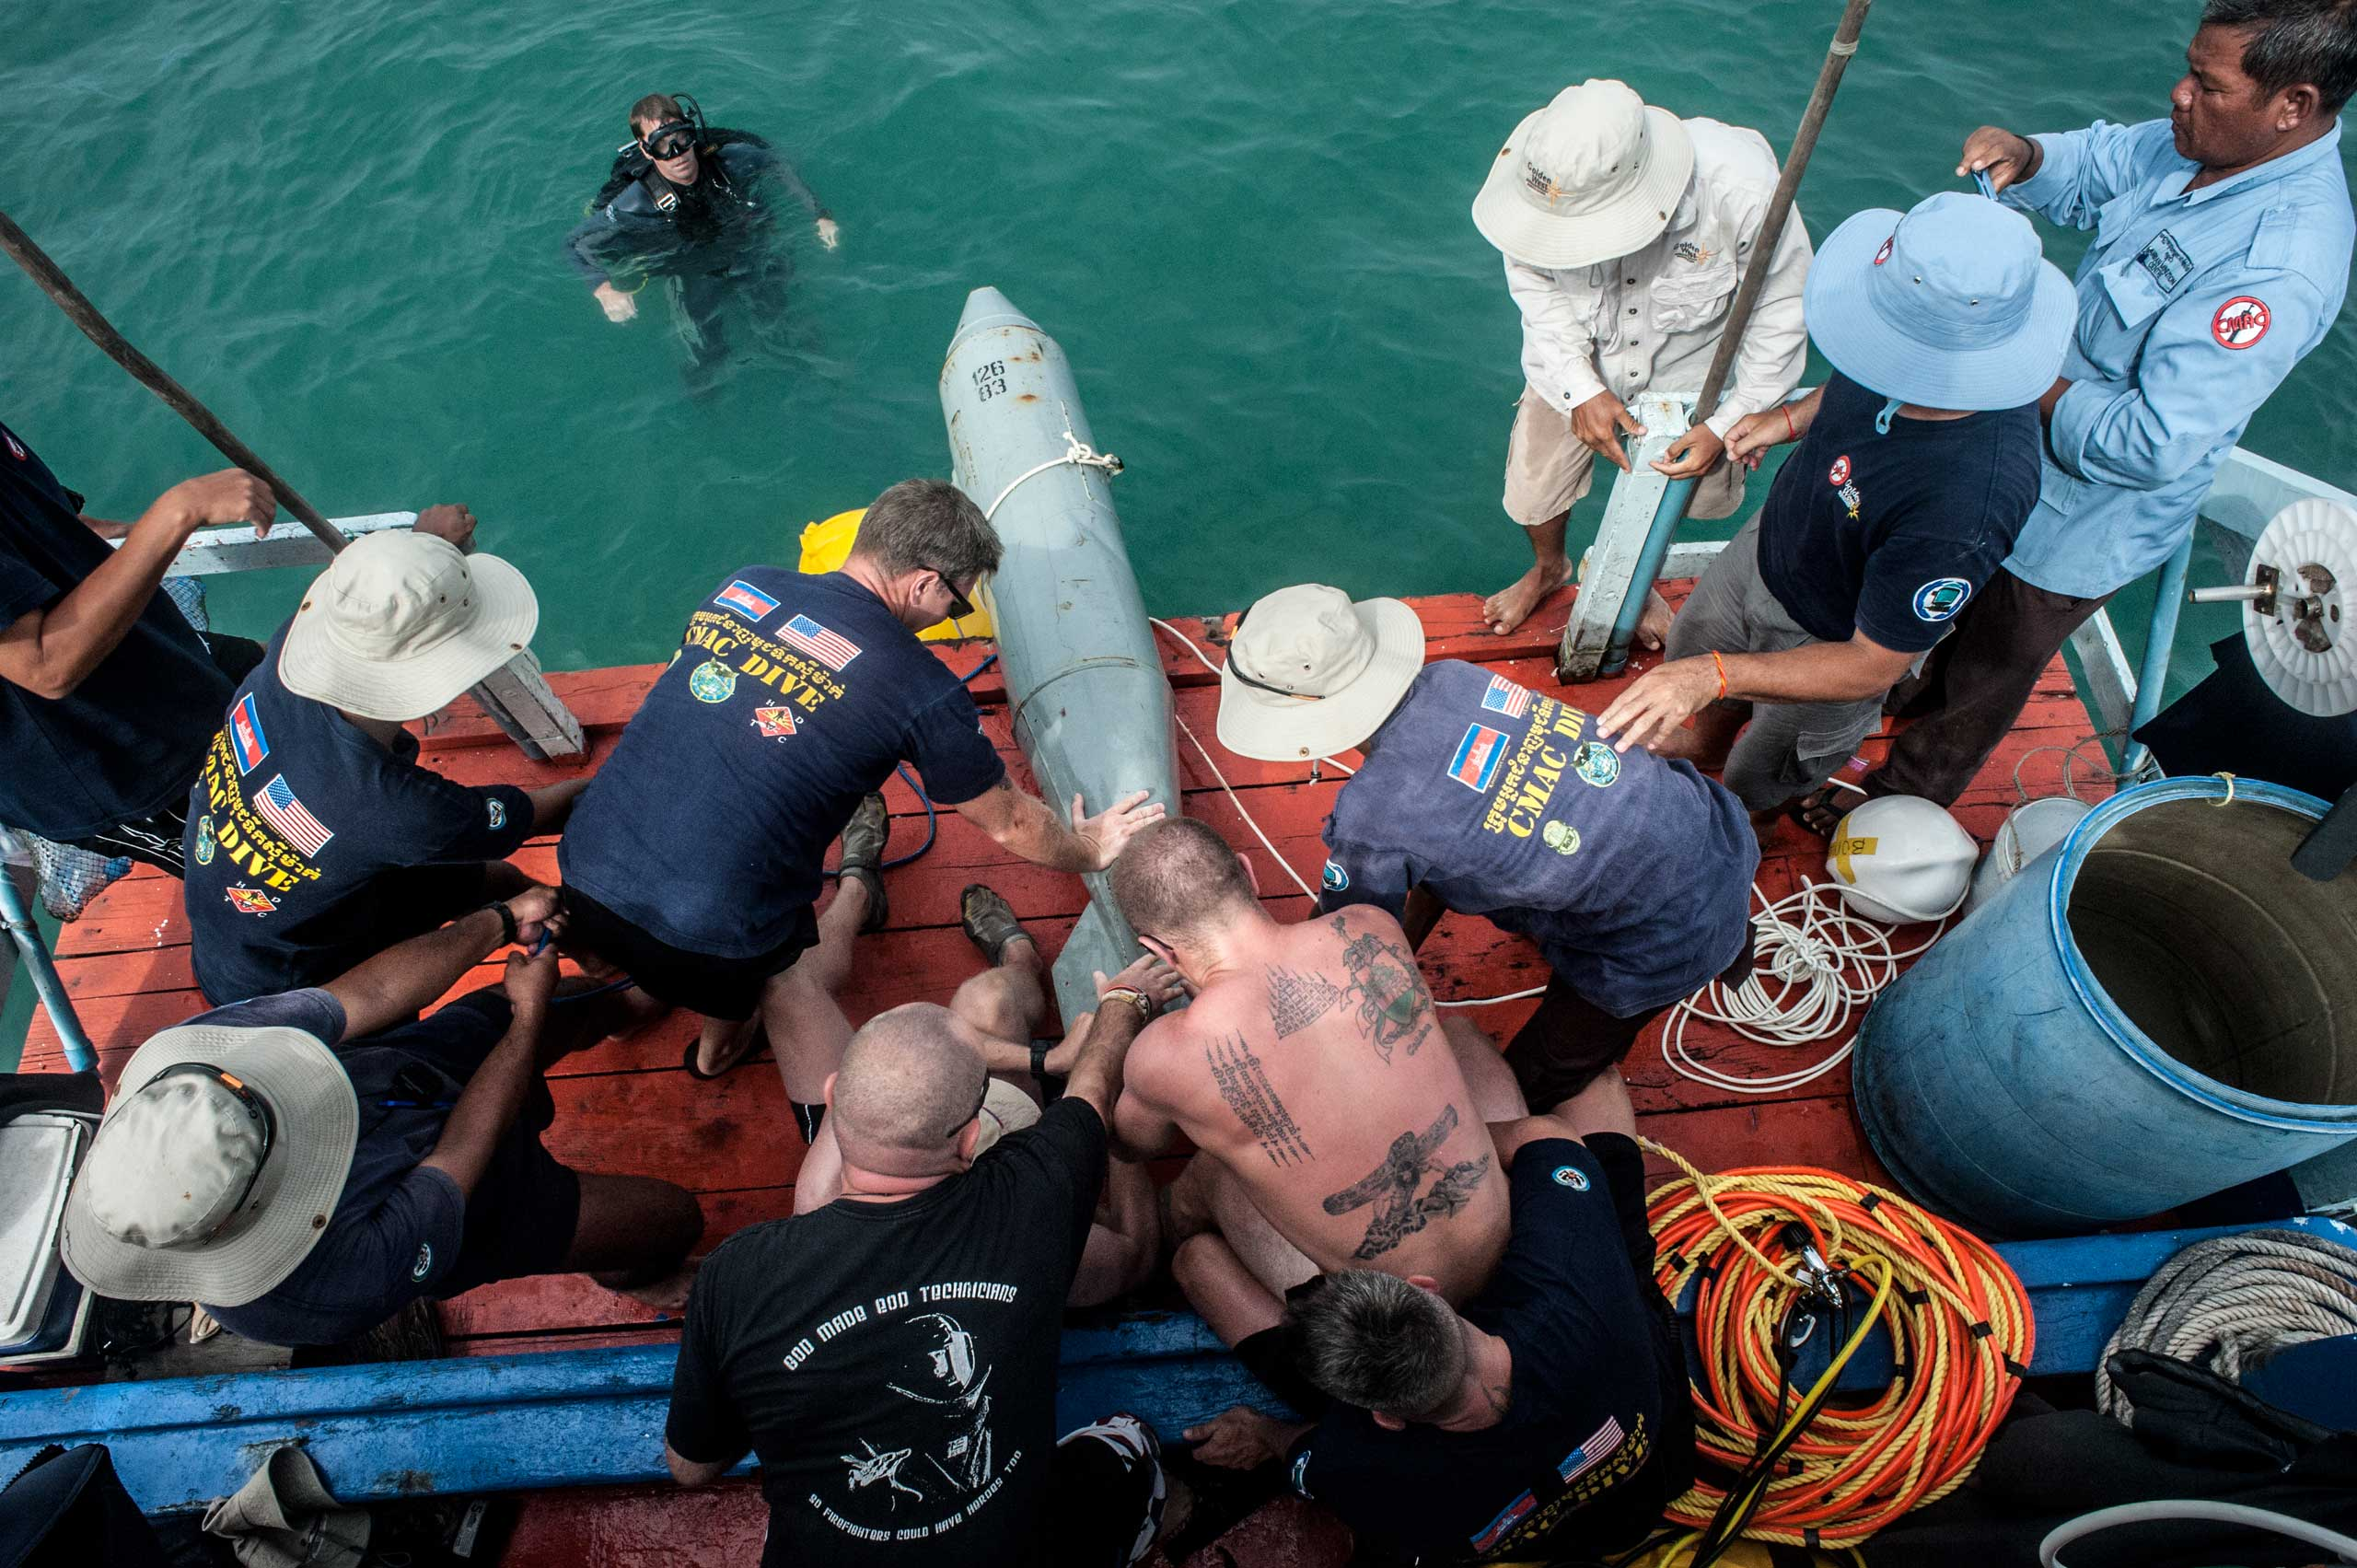 UXO salvage divers and members of the USA 7th Engineer Dive Detachment take part in the training program off the coast of Sihanoukville, Cambodia in July 2014. In this exercise the team was learning how to recover large inert ordinance using airbags to raise the item from the sea bed.